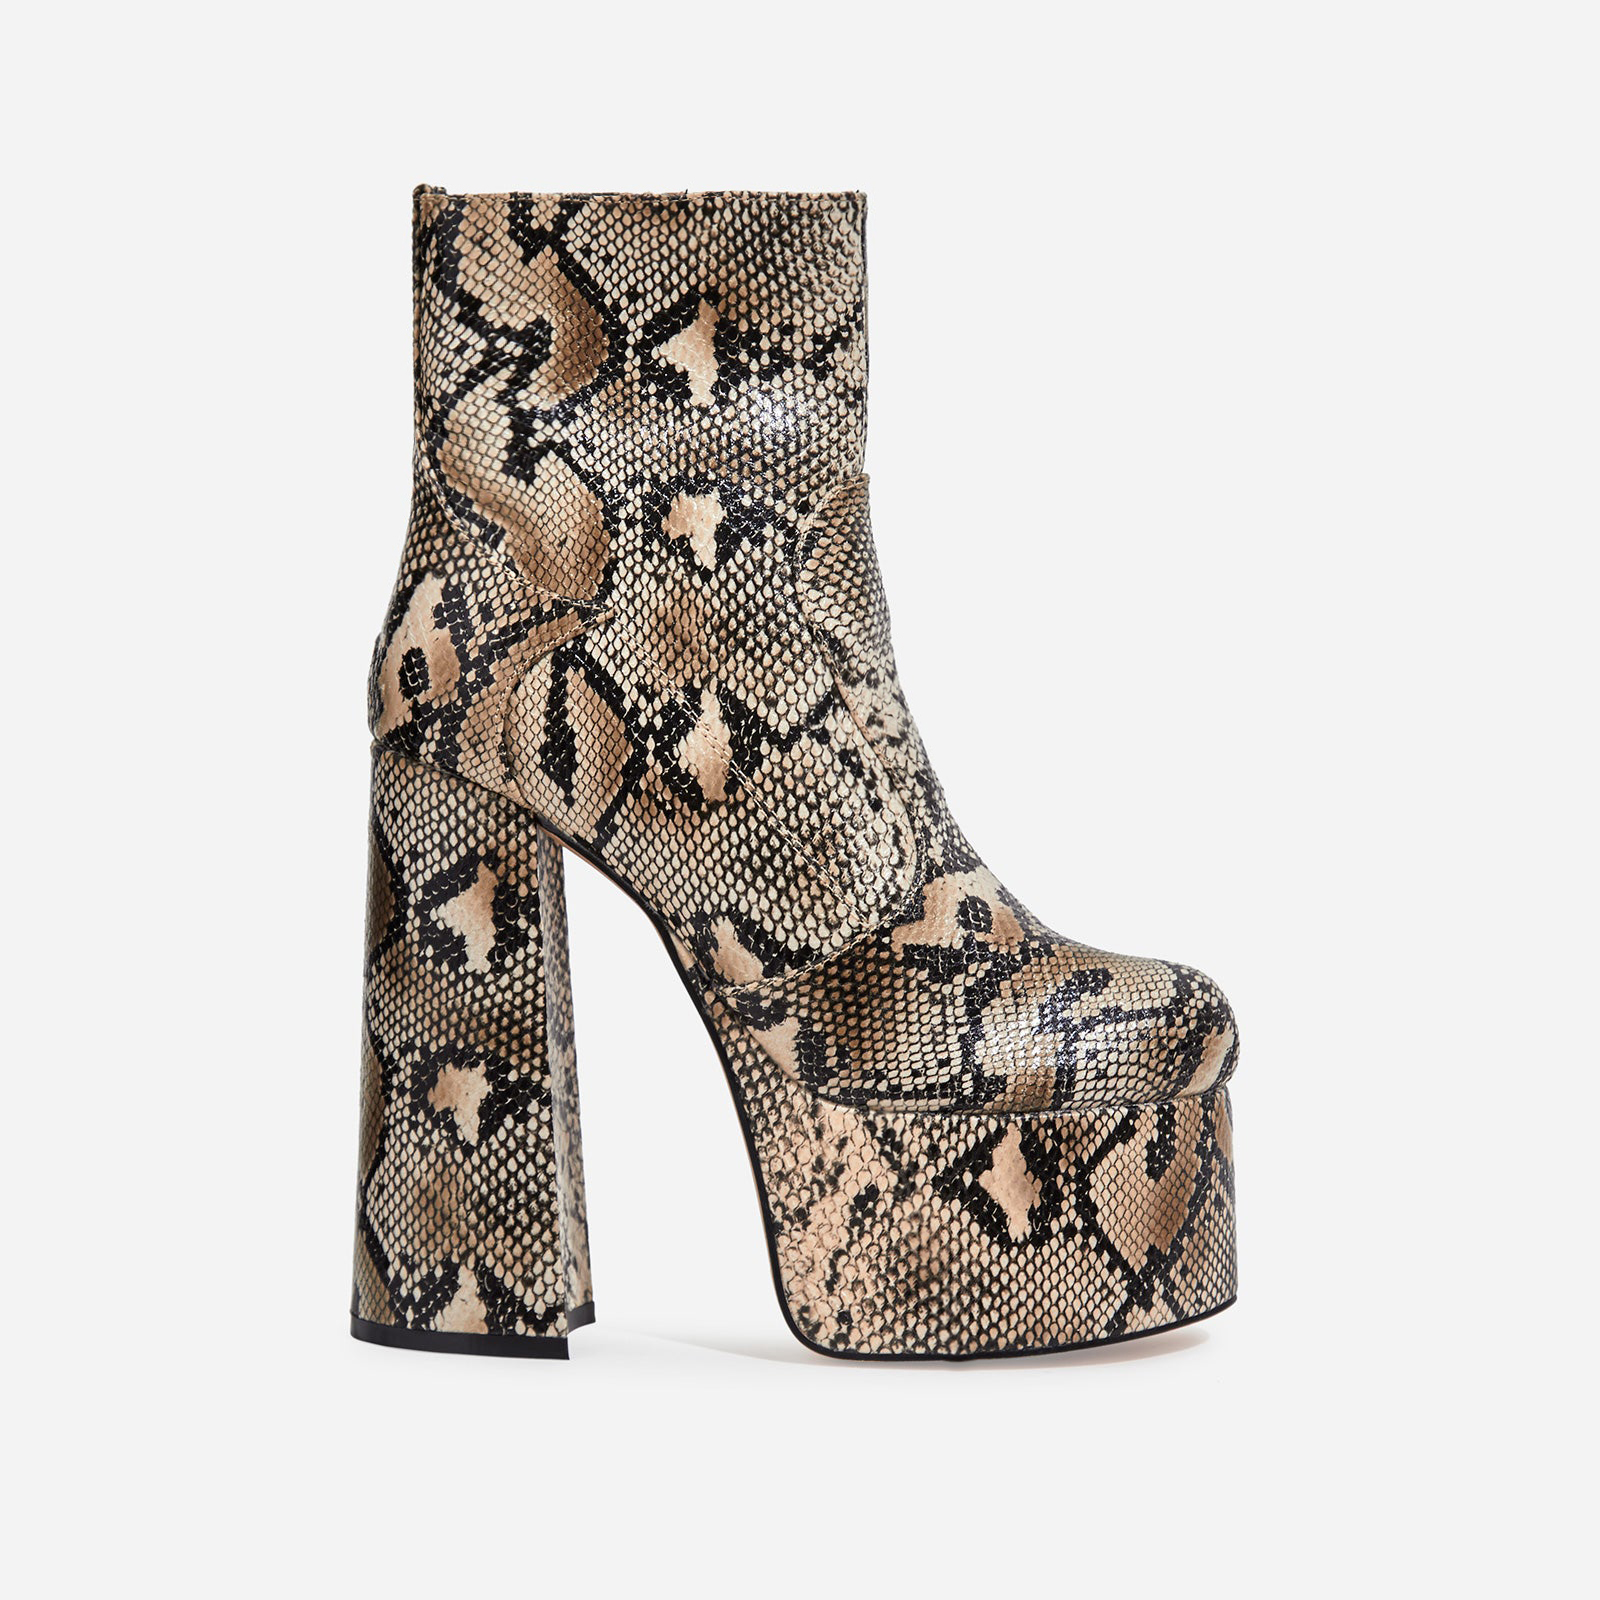 Steal Platform Block Heel Ankle Boot In Nude Snake Print Faux Leather